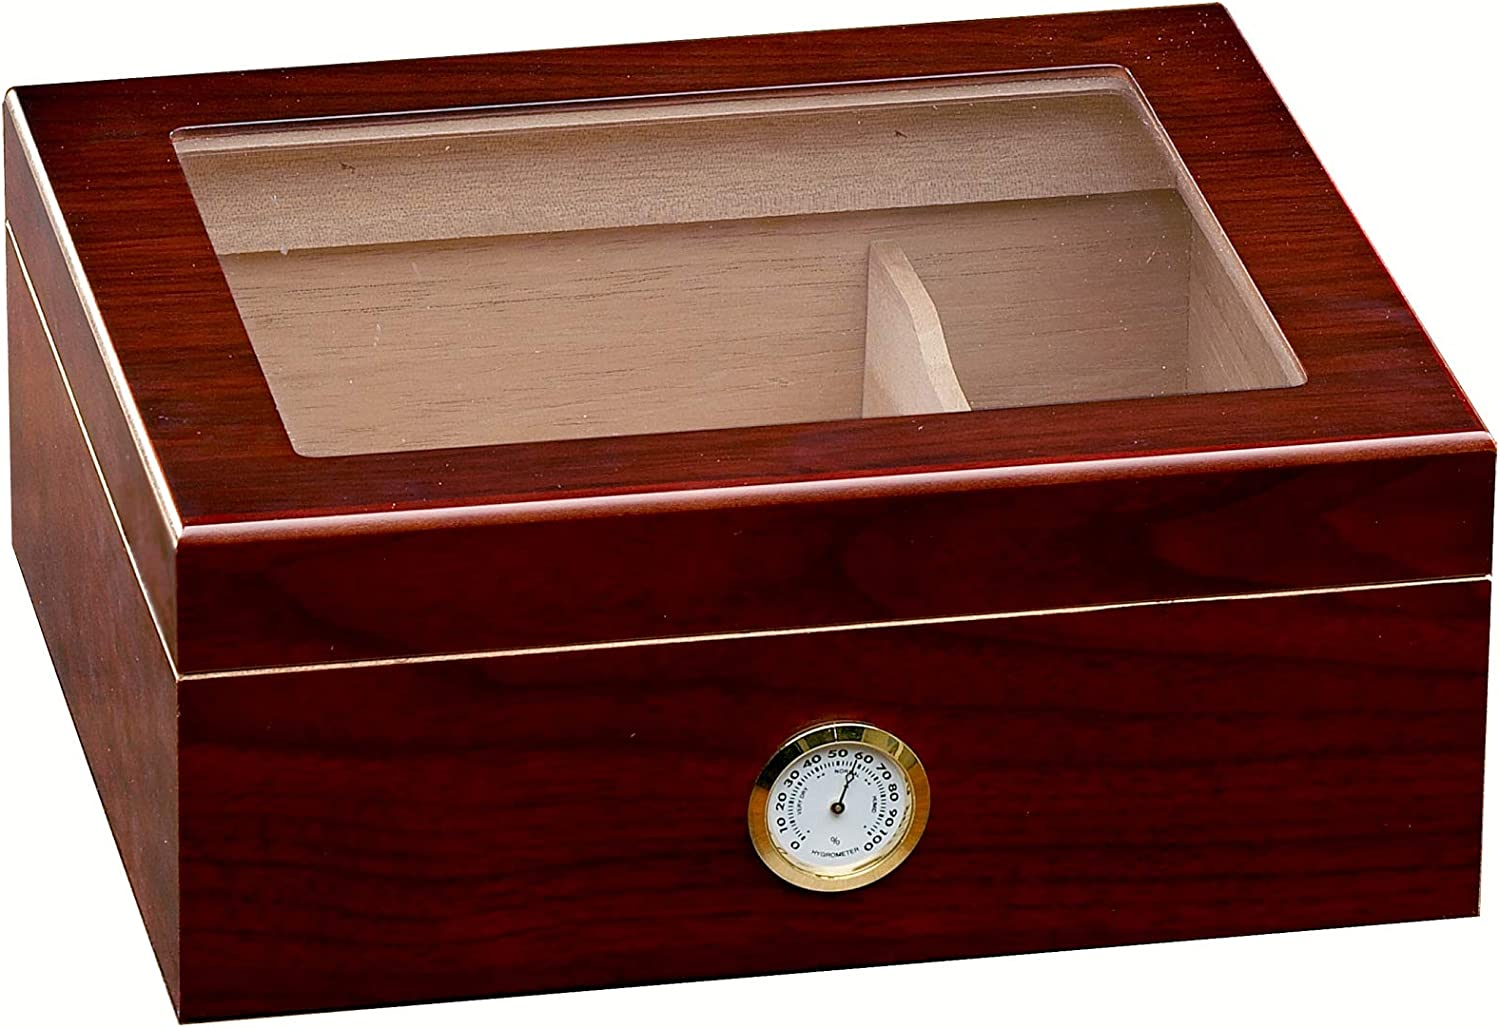 Prestige Import Group Chalet Glass Top Desktop Cigar Humidor with Hygrometer and Humidifier - Capacity: 20-50 - Color: Cherry